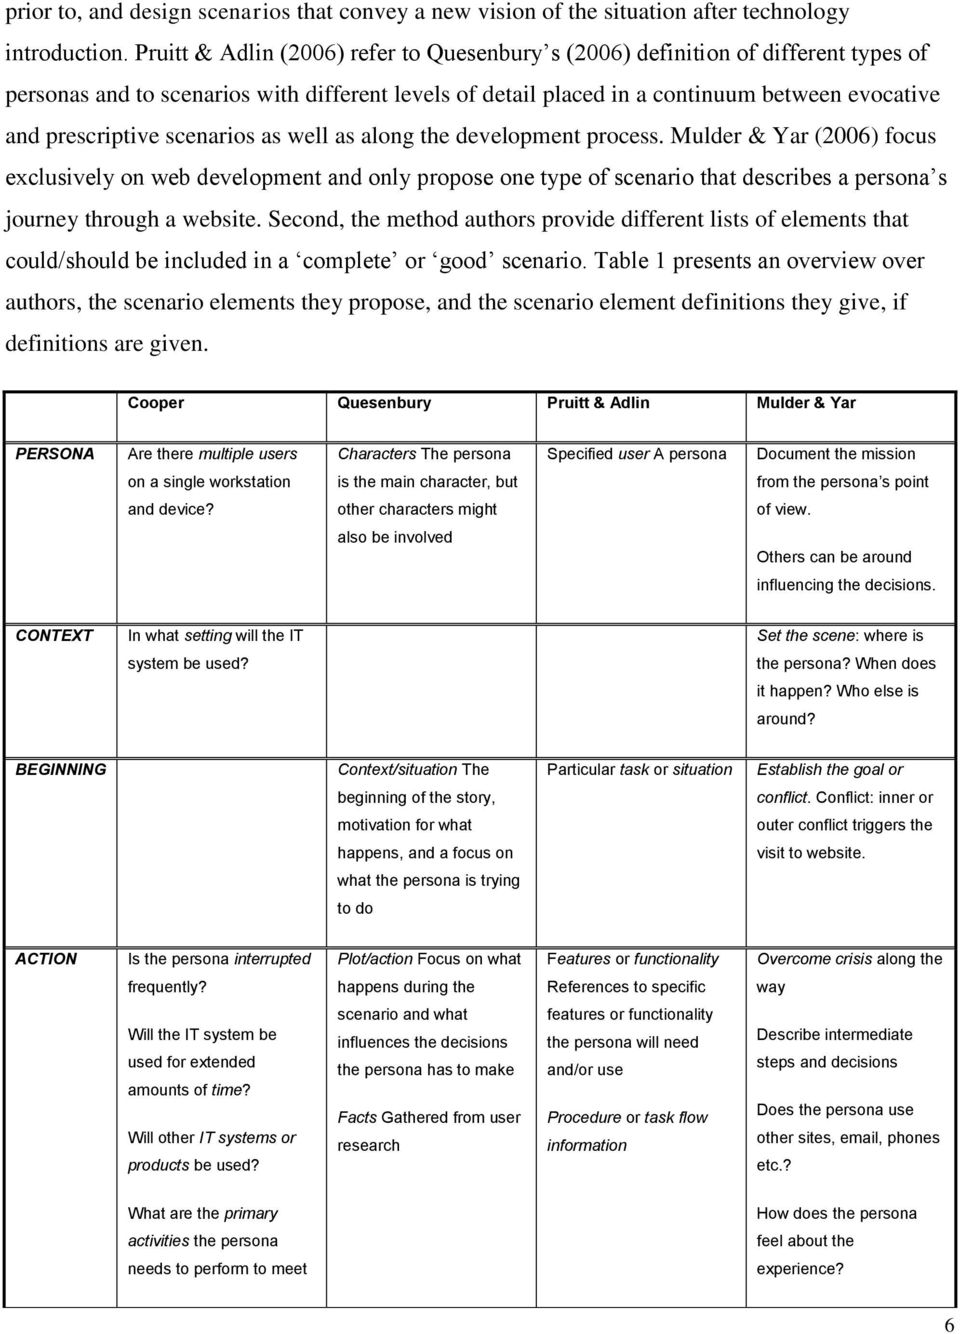 scenarios as well as along the development process. Mulder & Yar (2006) focus exclusively on web development and only propose one type of scenario that describes a persona s journey through a website.